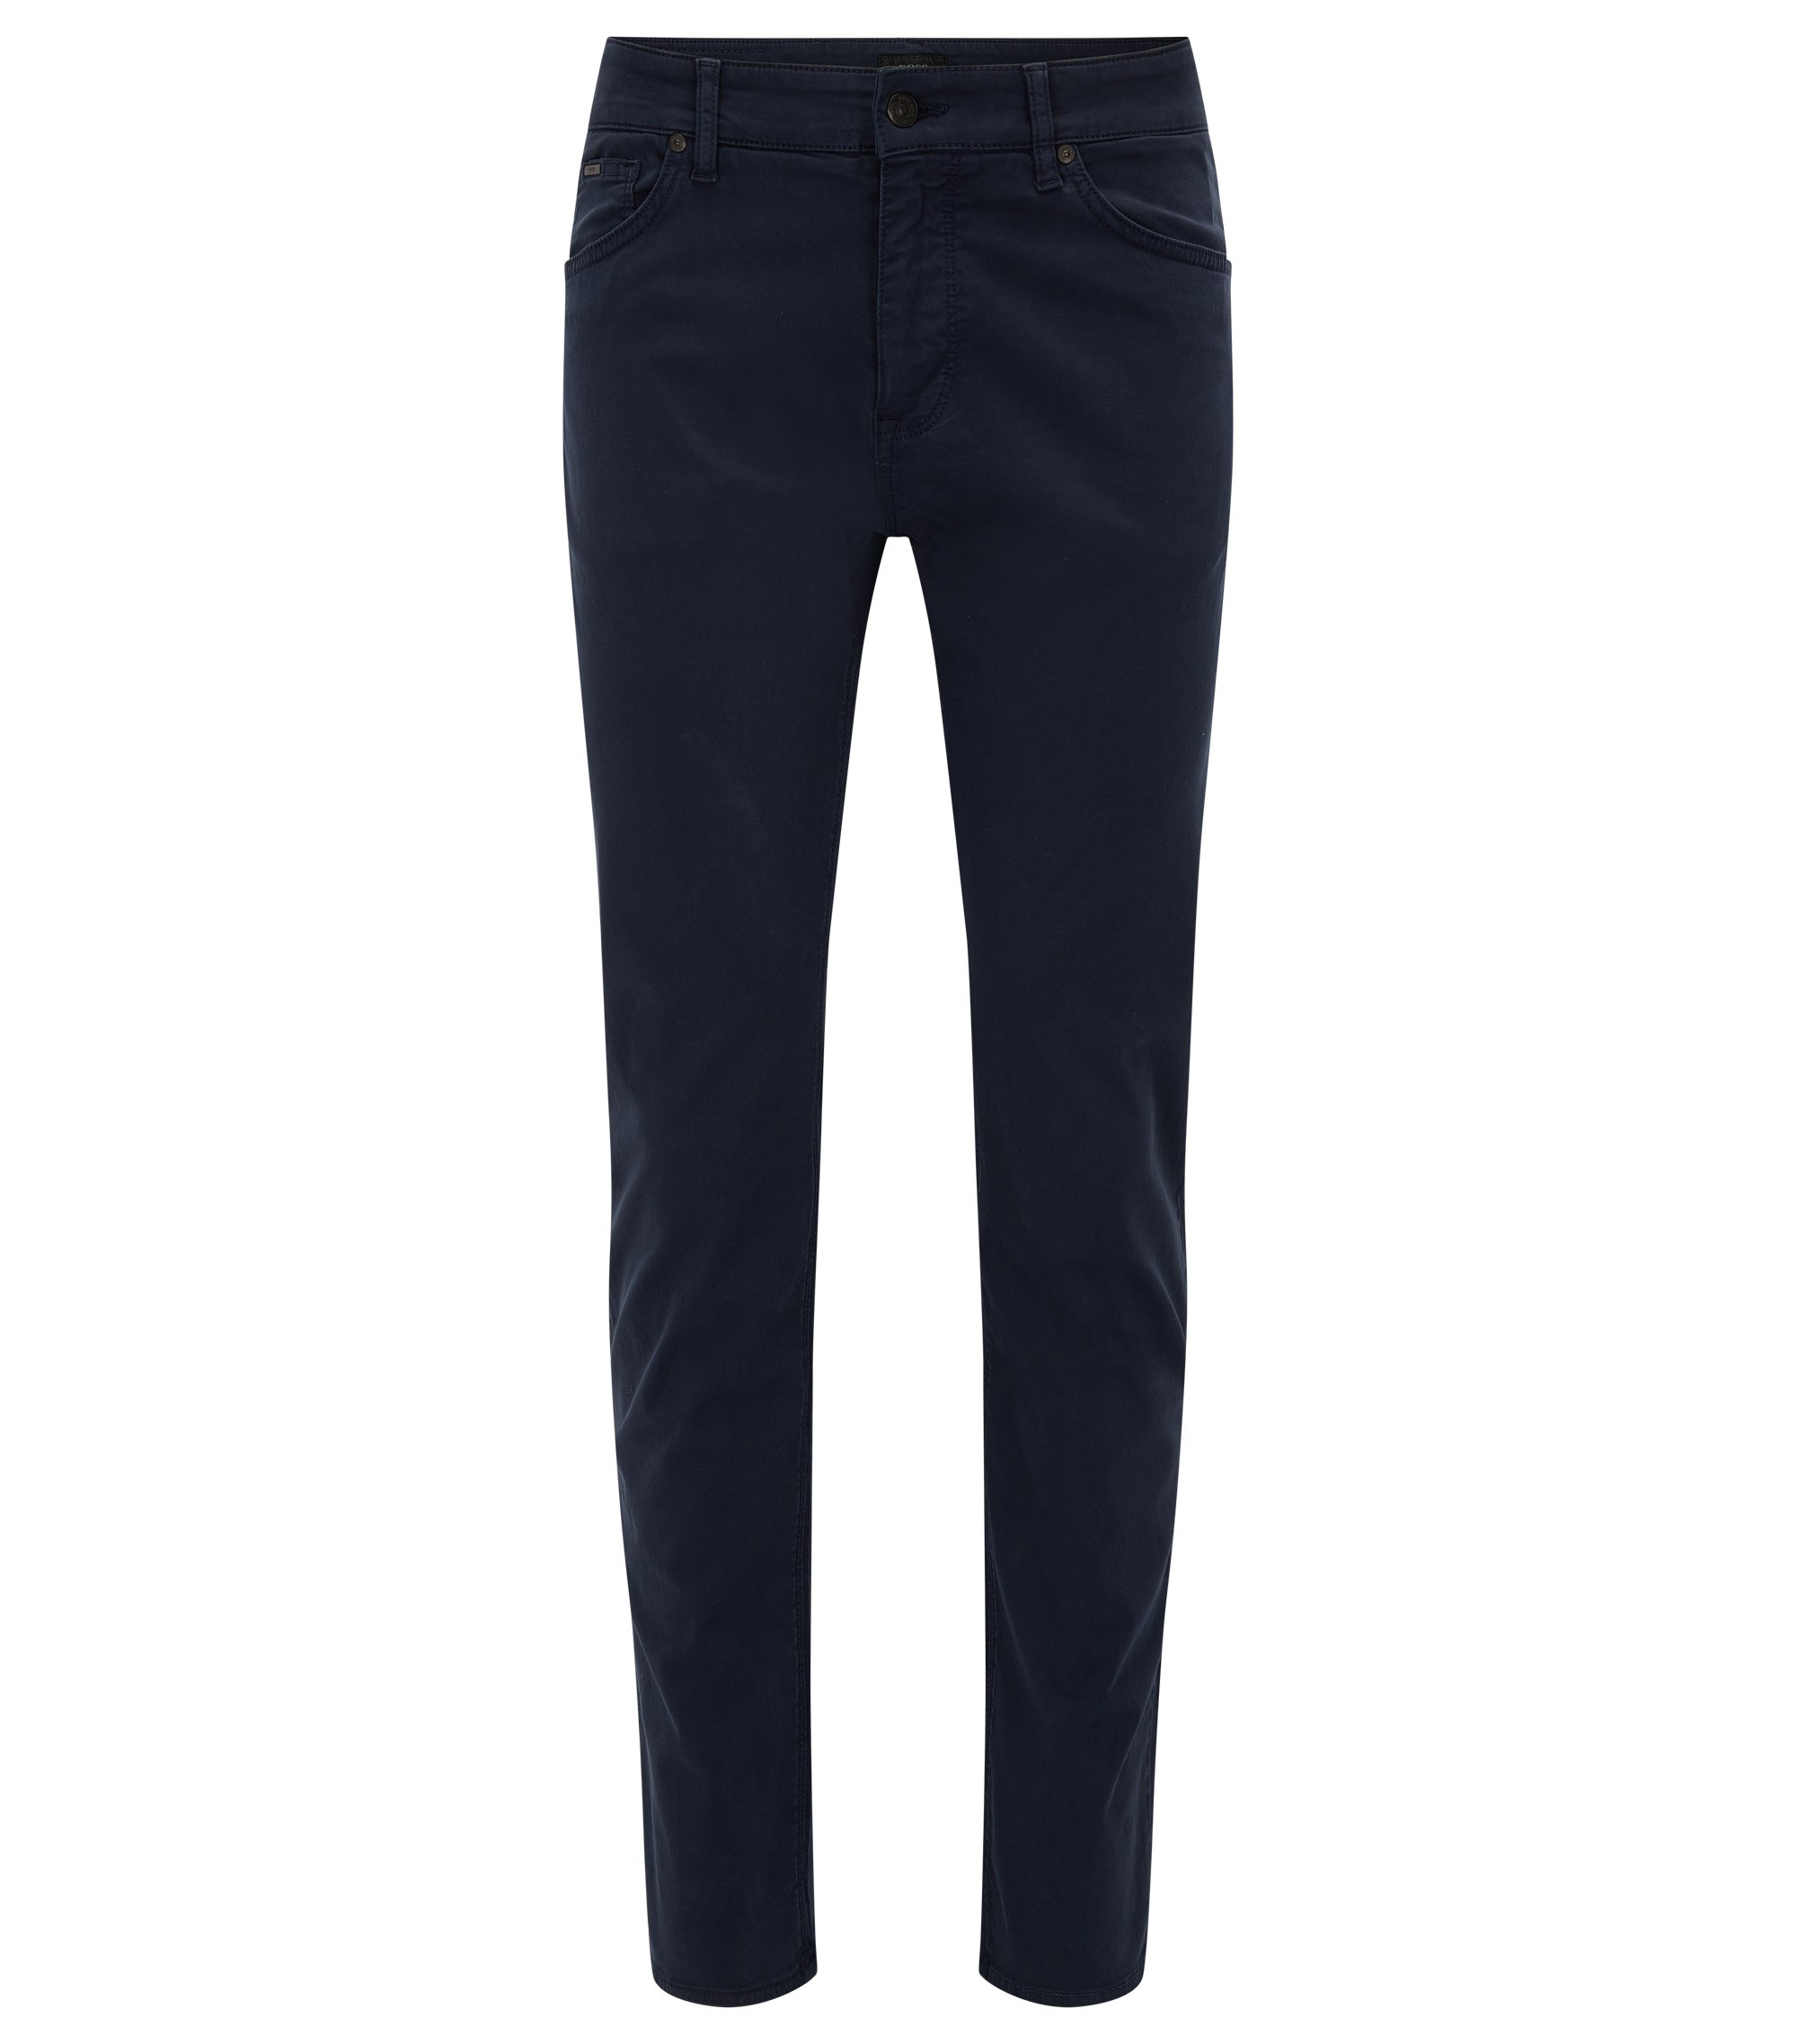 Jeans Regular Fit en denim stretch effet satin, Bleu foncé